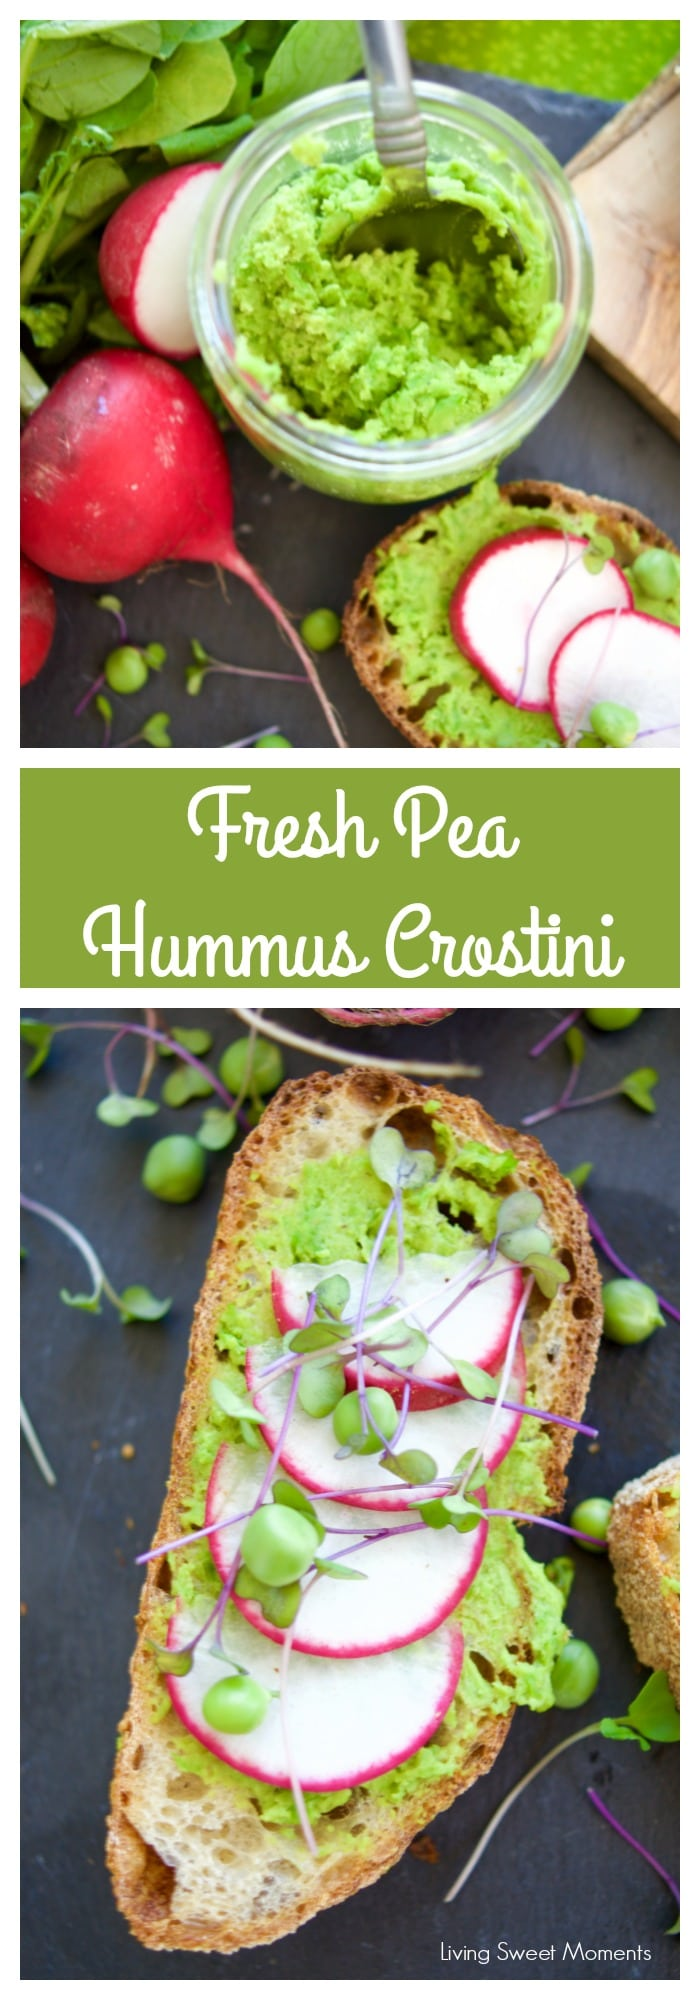 This delicious Pea Hummus Crostini recipe is easy and perfect for a Spring appetizer. Made with mint and tahini that gives a unique flavor. Vegan as well